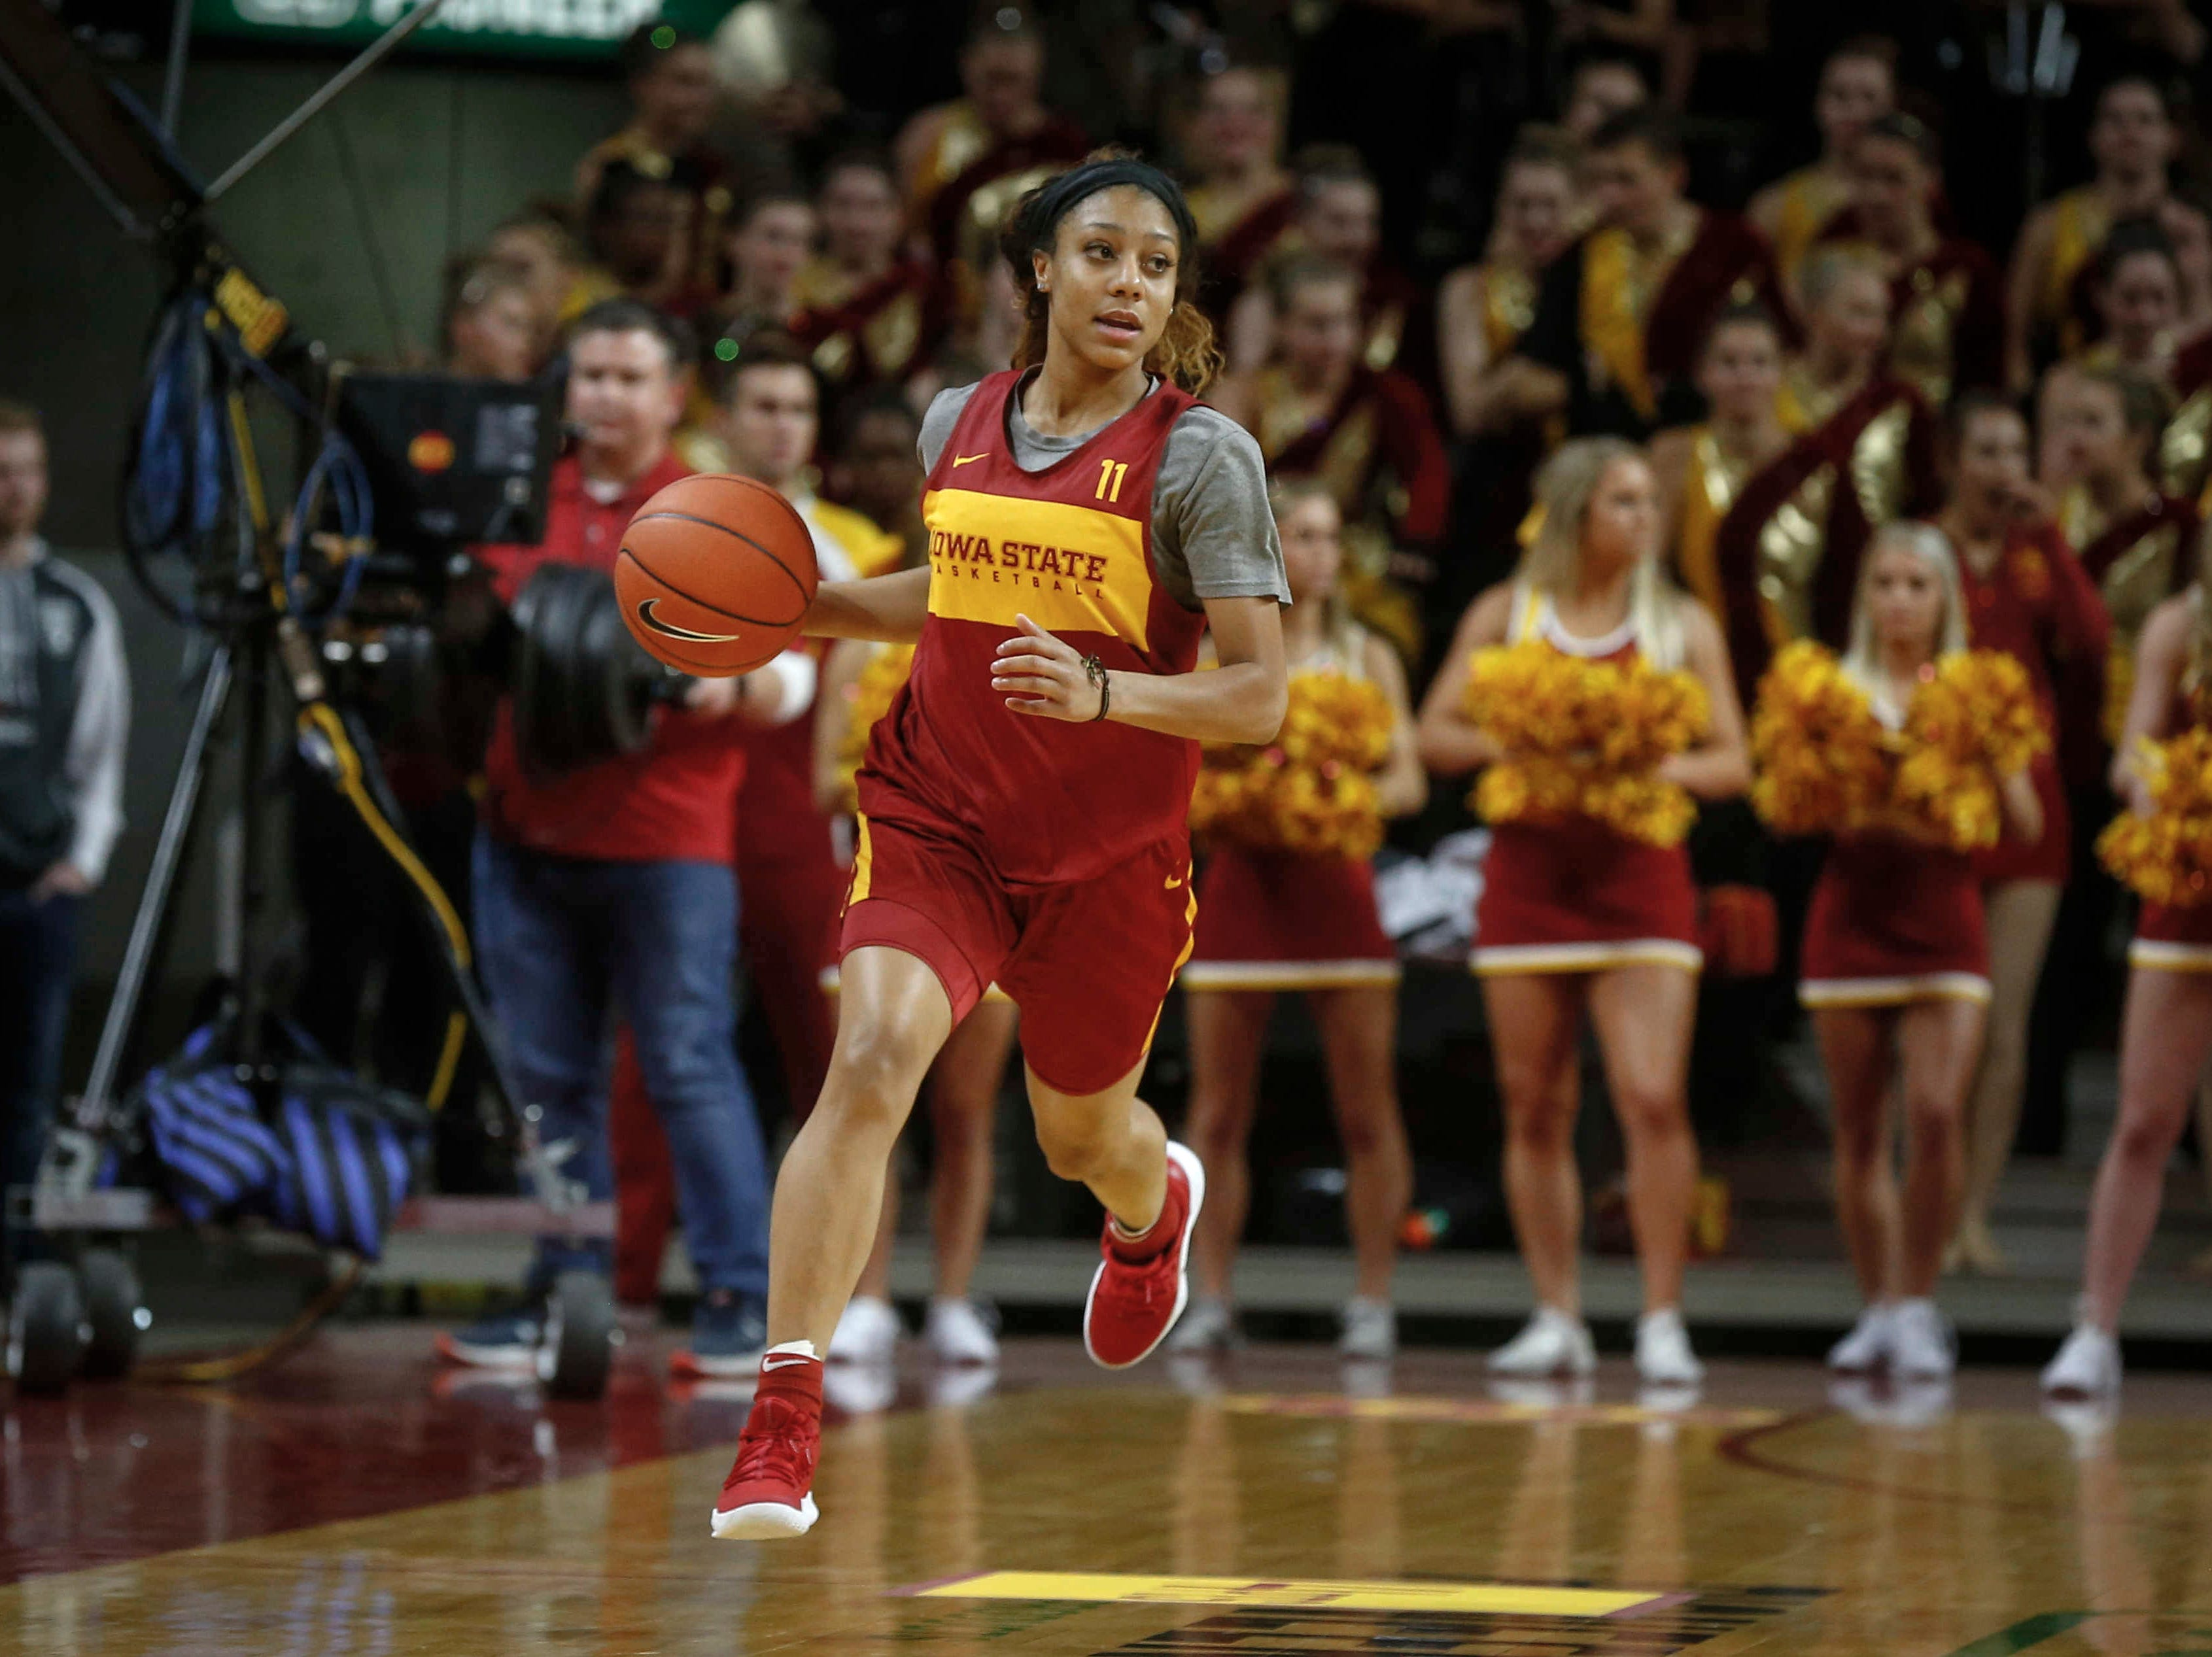 Iowa State junior Jade Thurmon brings the ball up court in a scrimmage during Hilton Madness at Hilton Coliseum in Ames on Friday, Oct. 12, 2018.